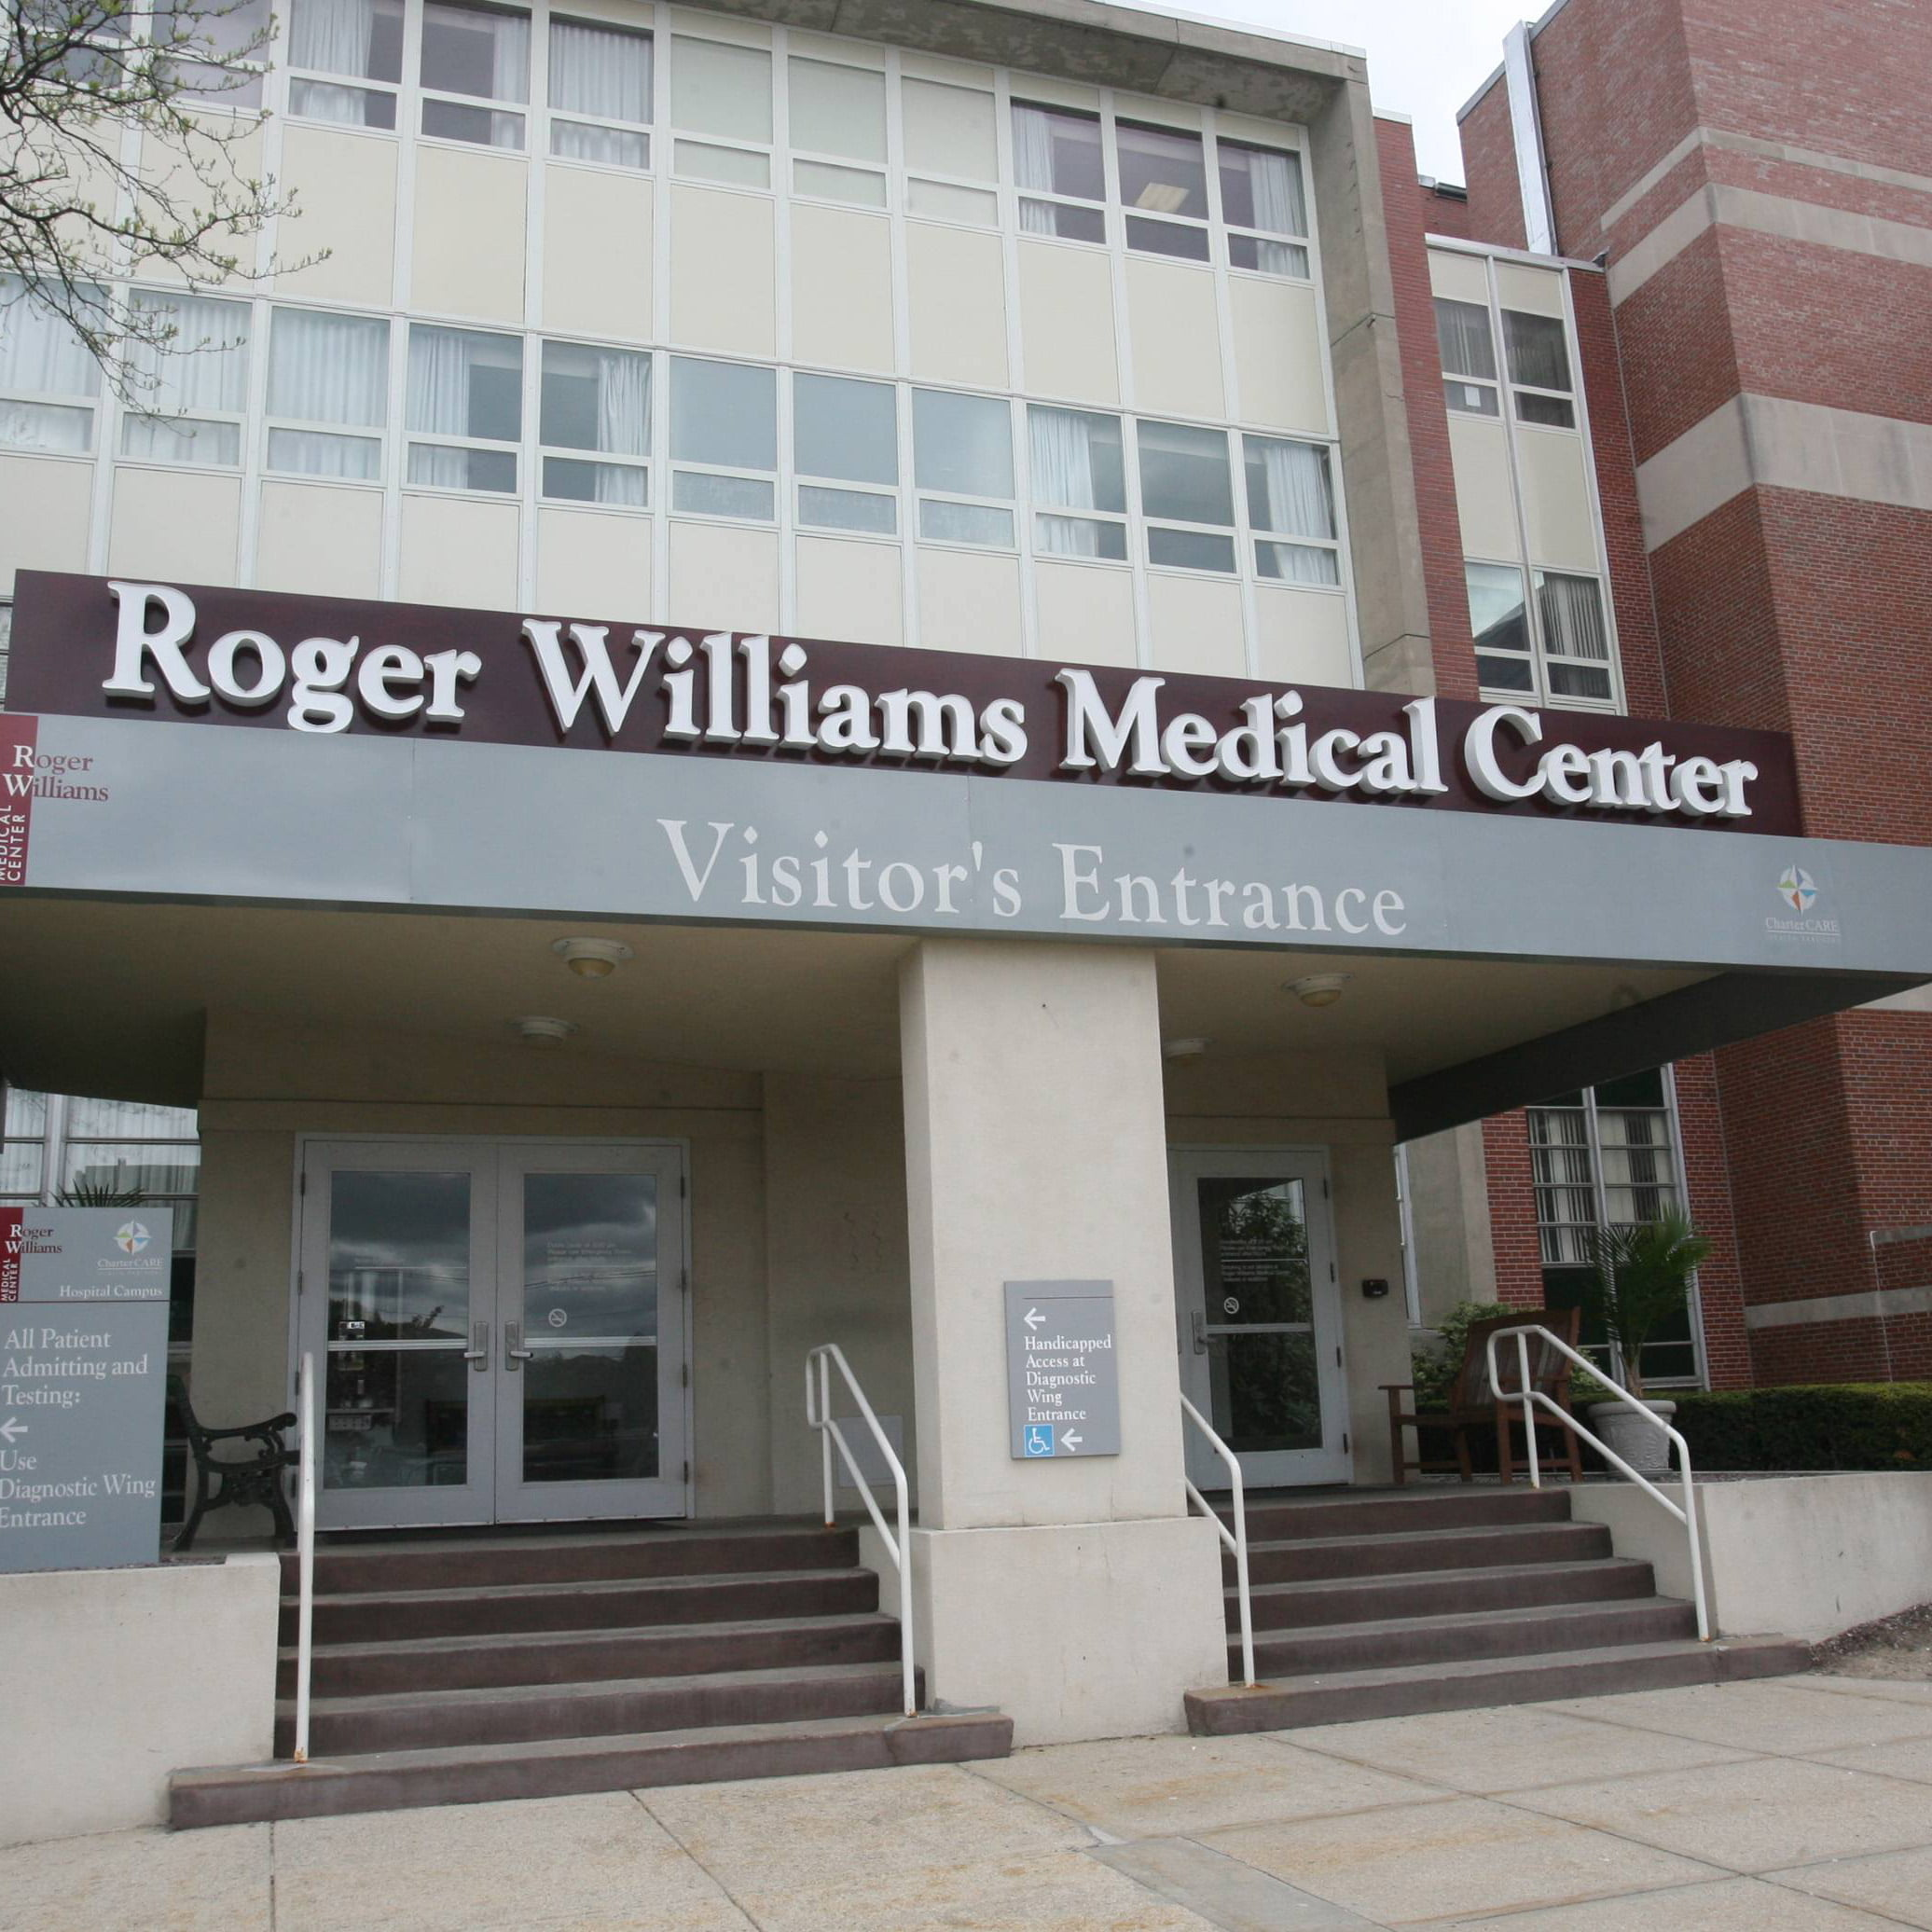 Roger Williams Medical Center